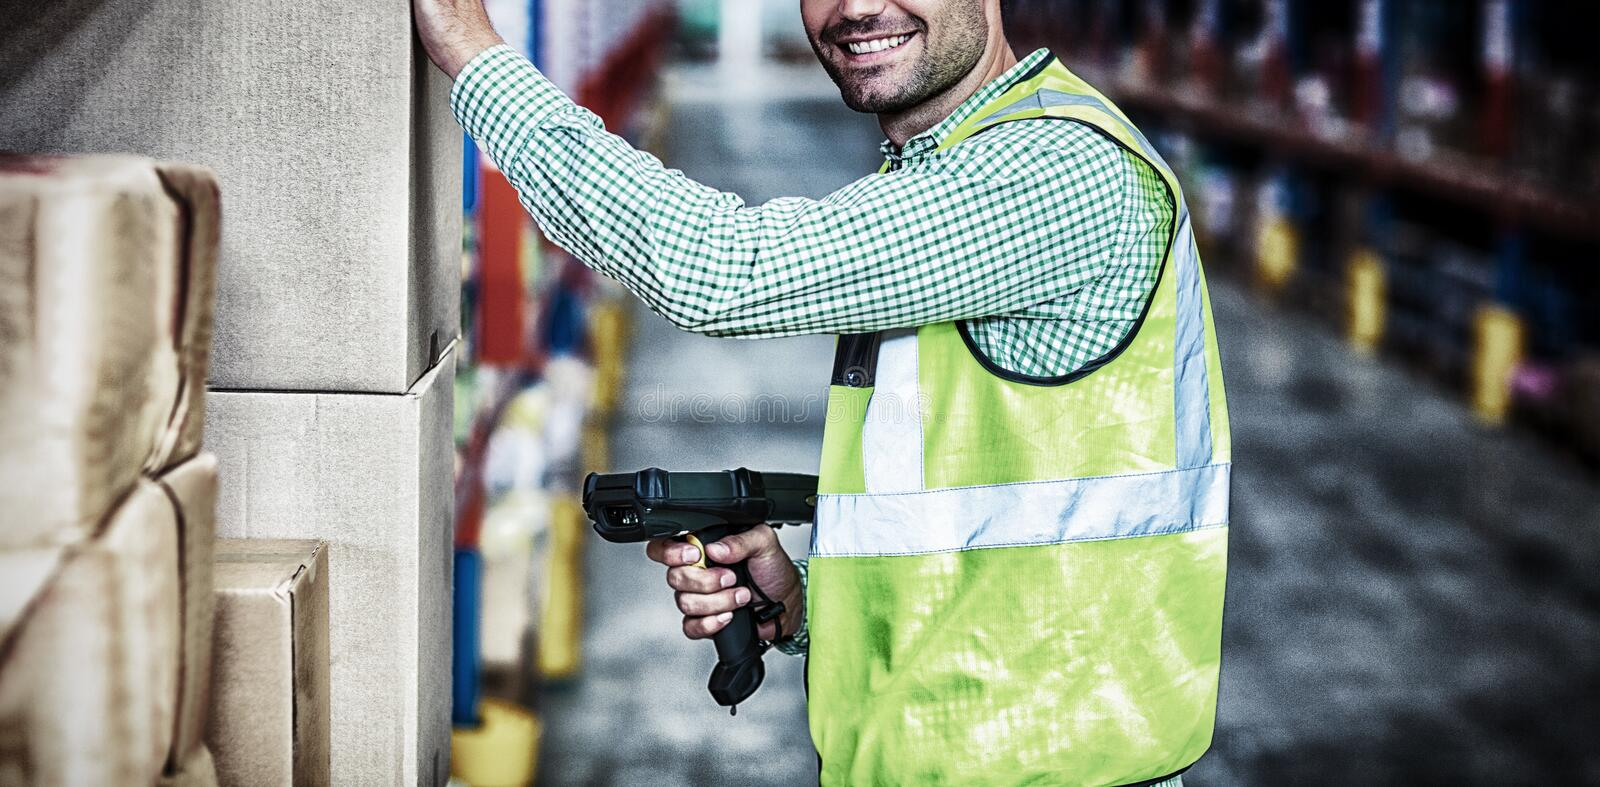 Worker is smiling and posing during work royalty free stock images